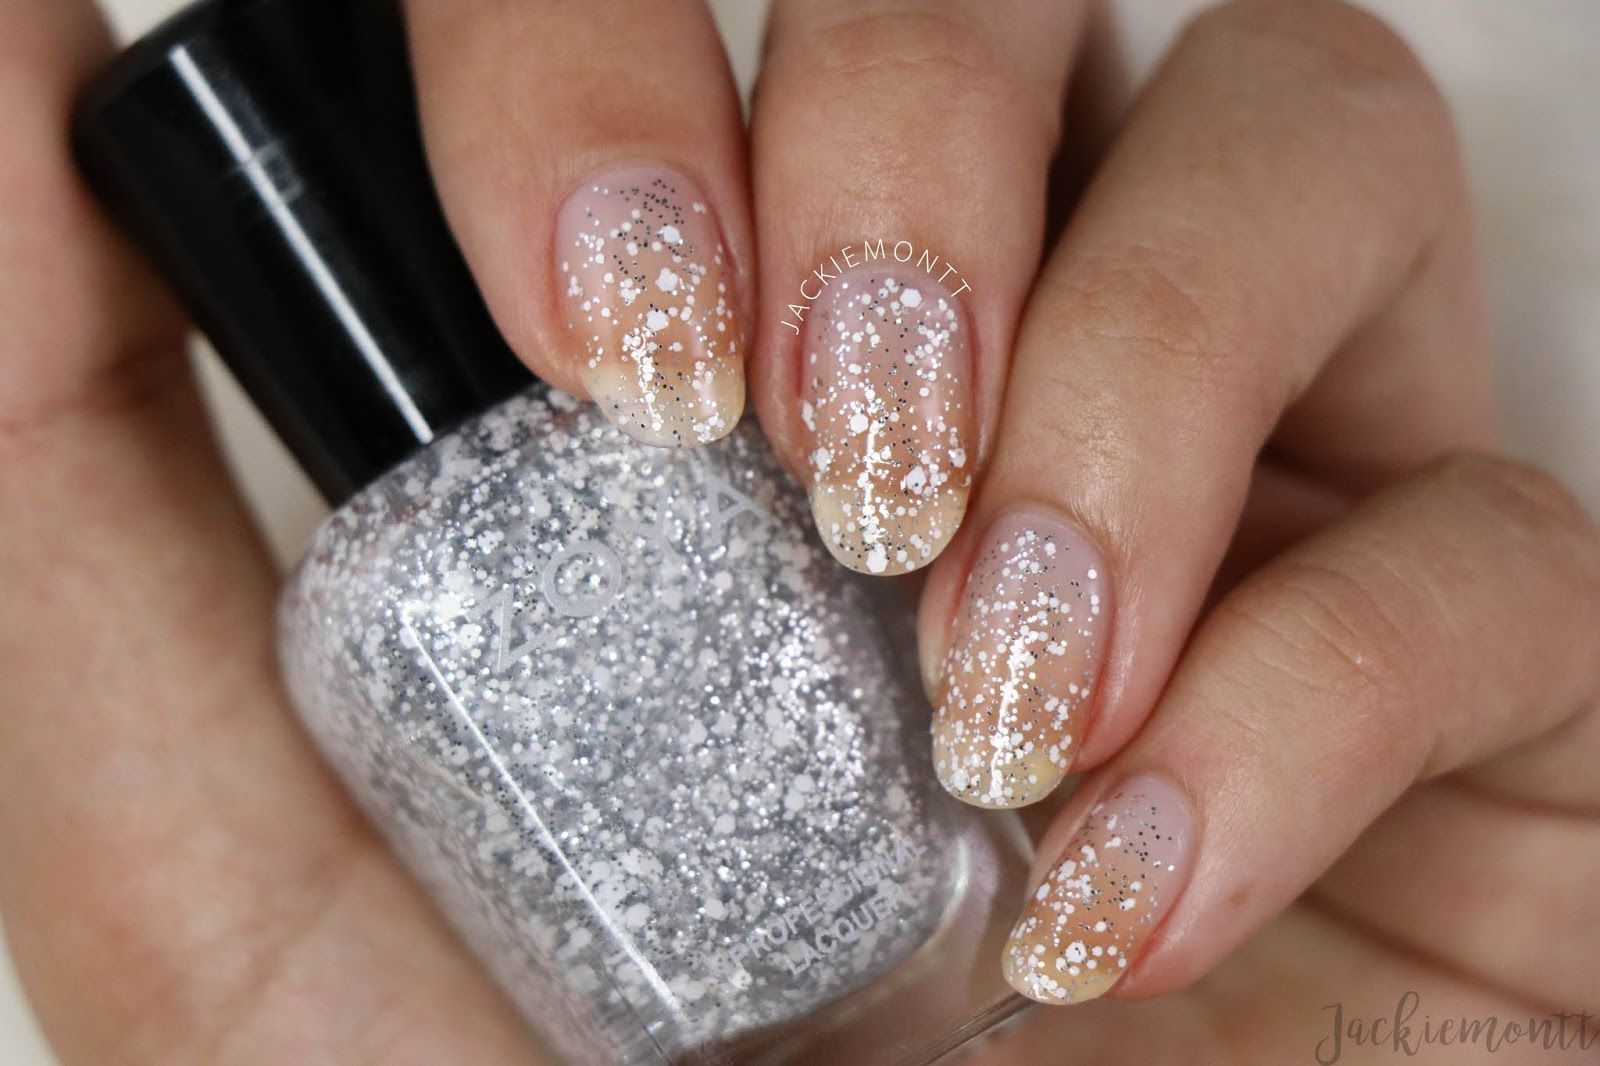 Zoya Barefoot Collection Swatches And Review Summer 2019 Clear Glitter Nails Zoya Pink Polish